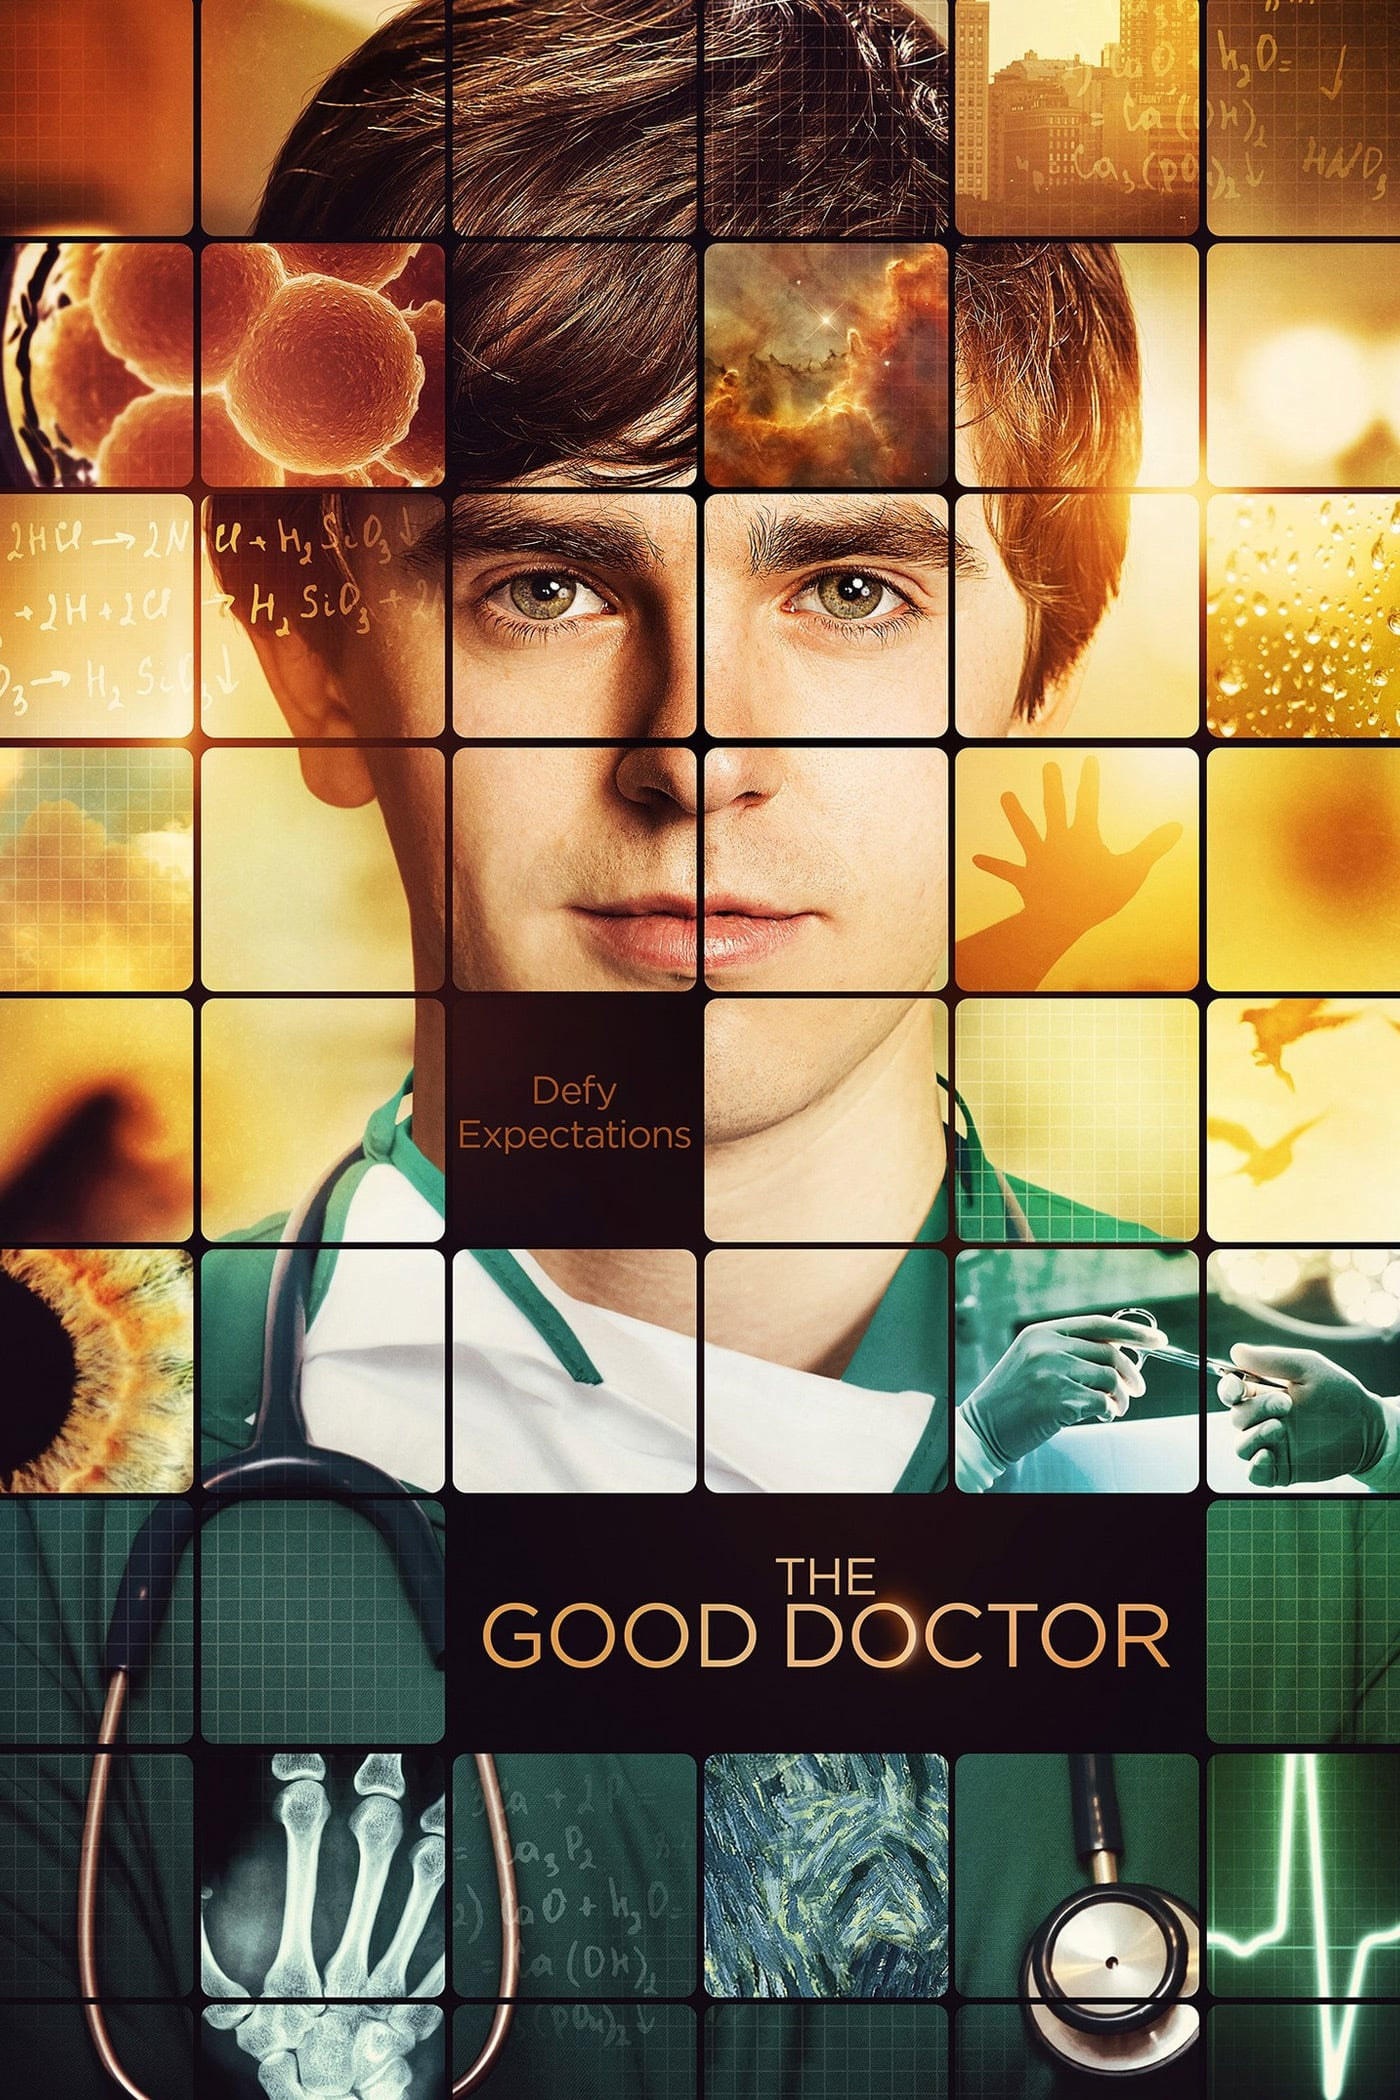 The Good Doctor [S05 E01 ADDED]